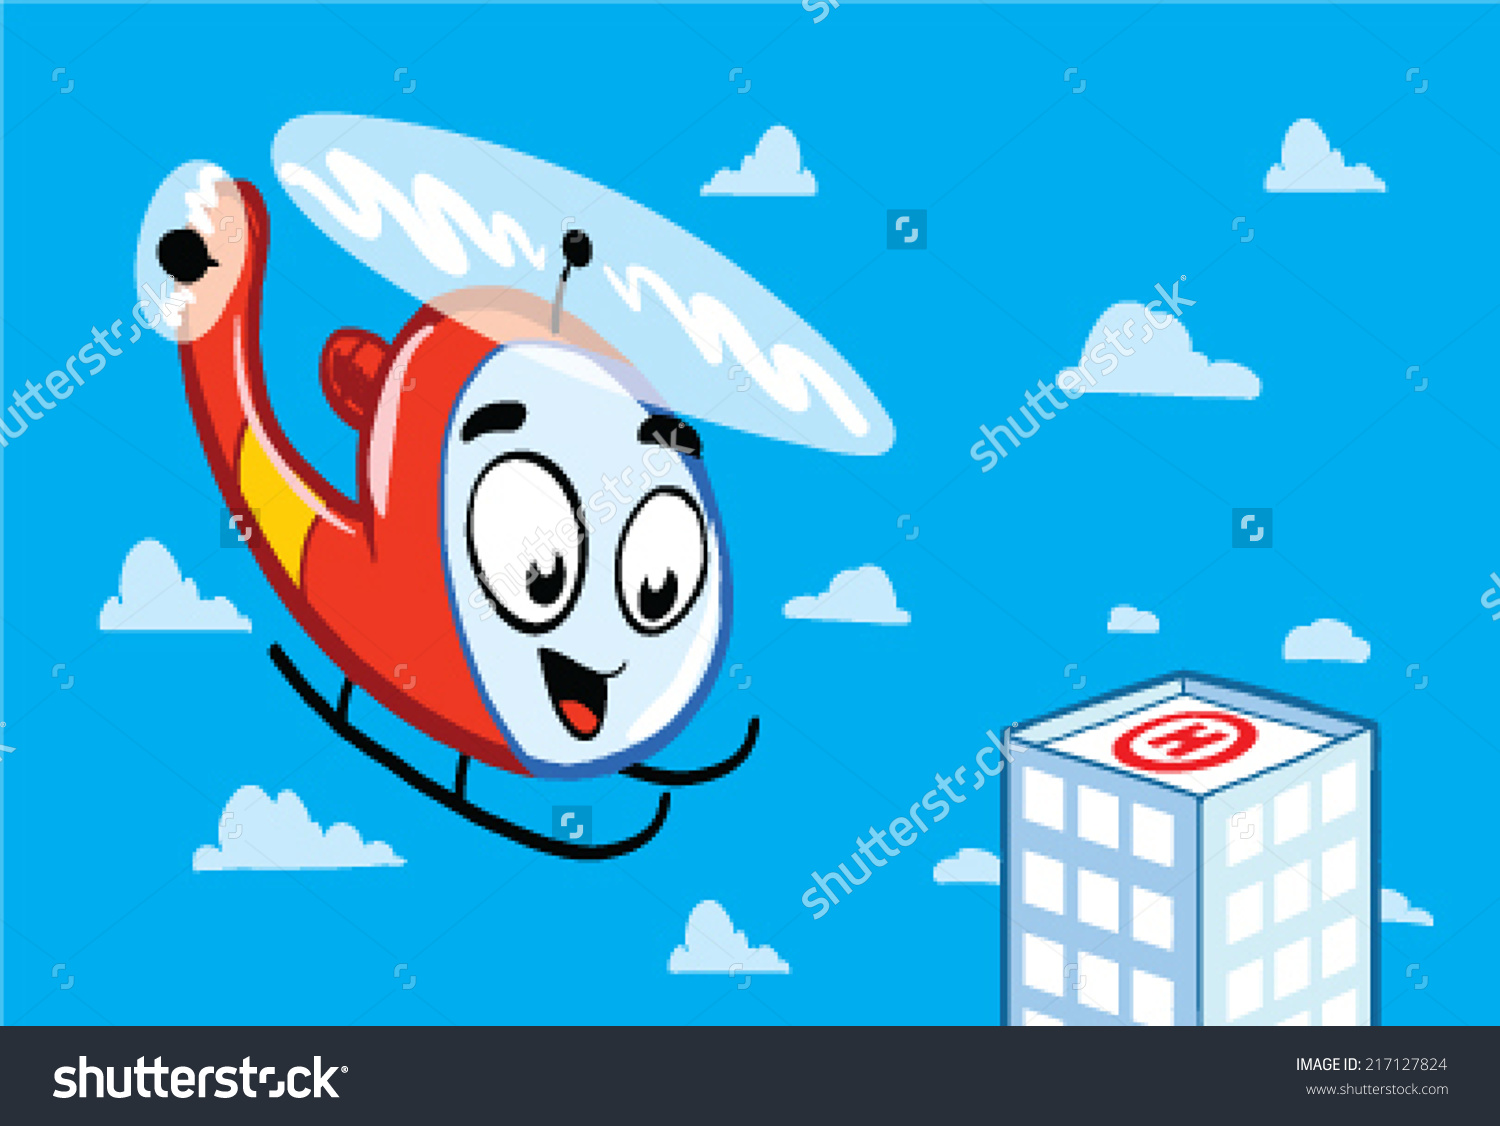 Cartoon Helicopter Landing On Hospital Roof Stock Vector.